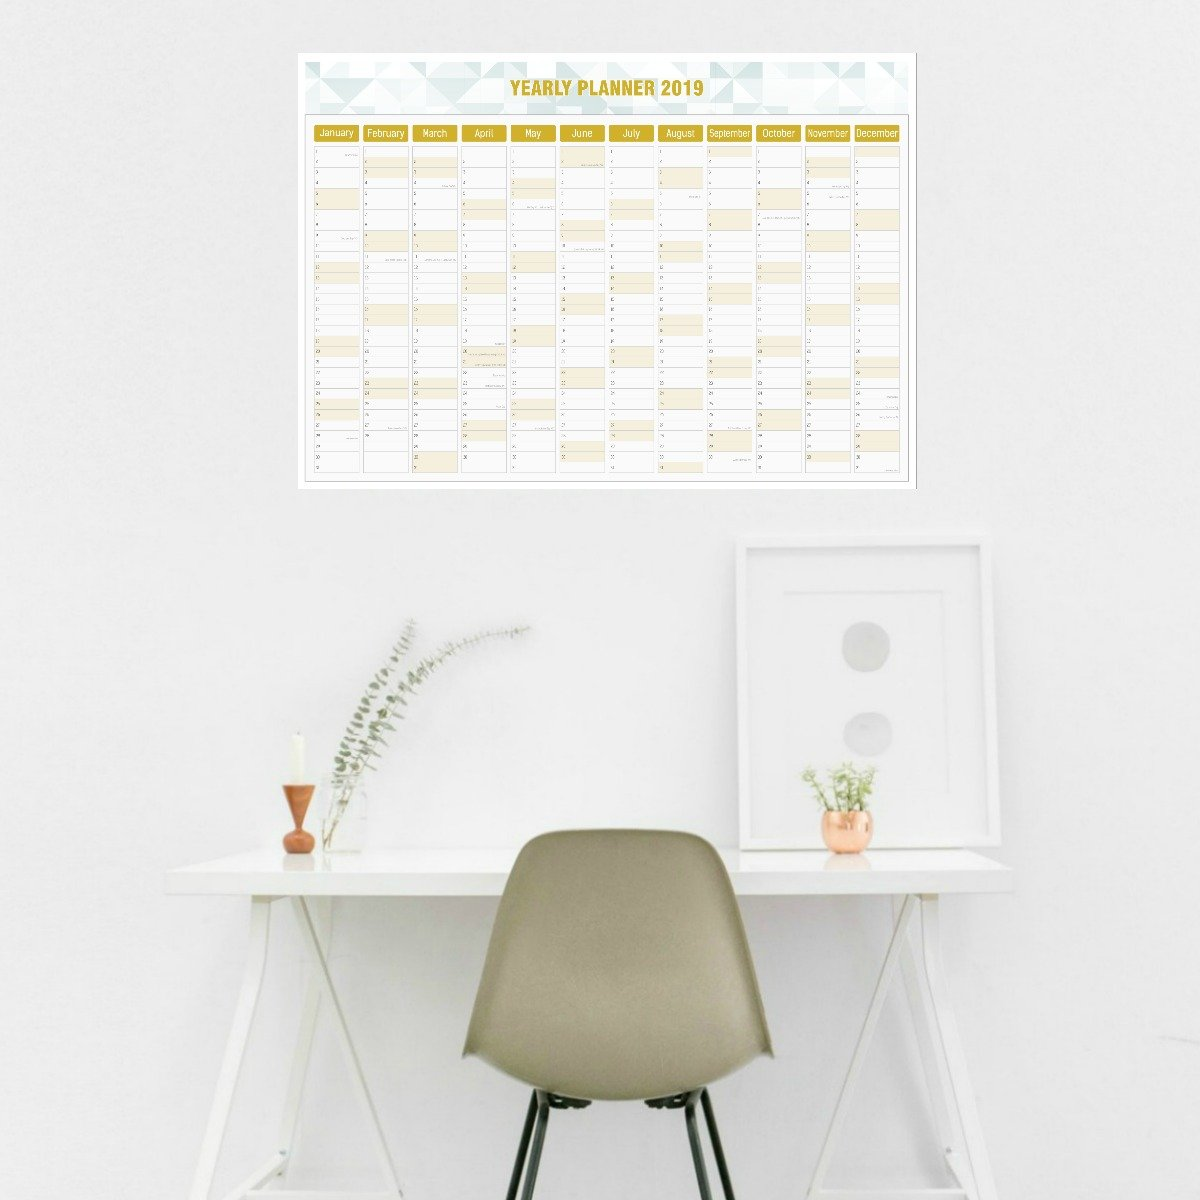 2019 Yearly Planner Gold Hatched Designs